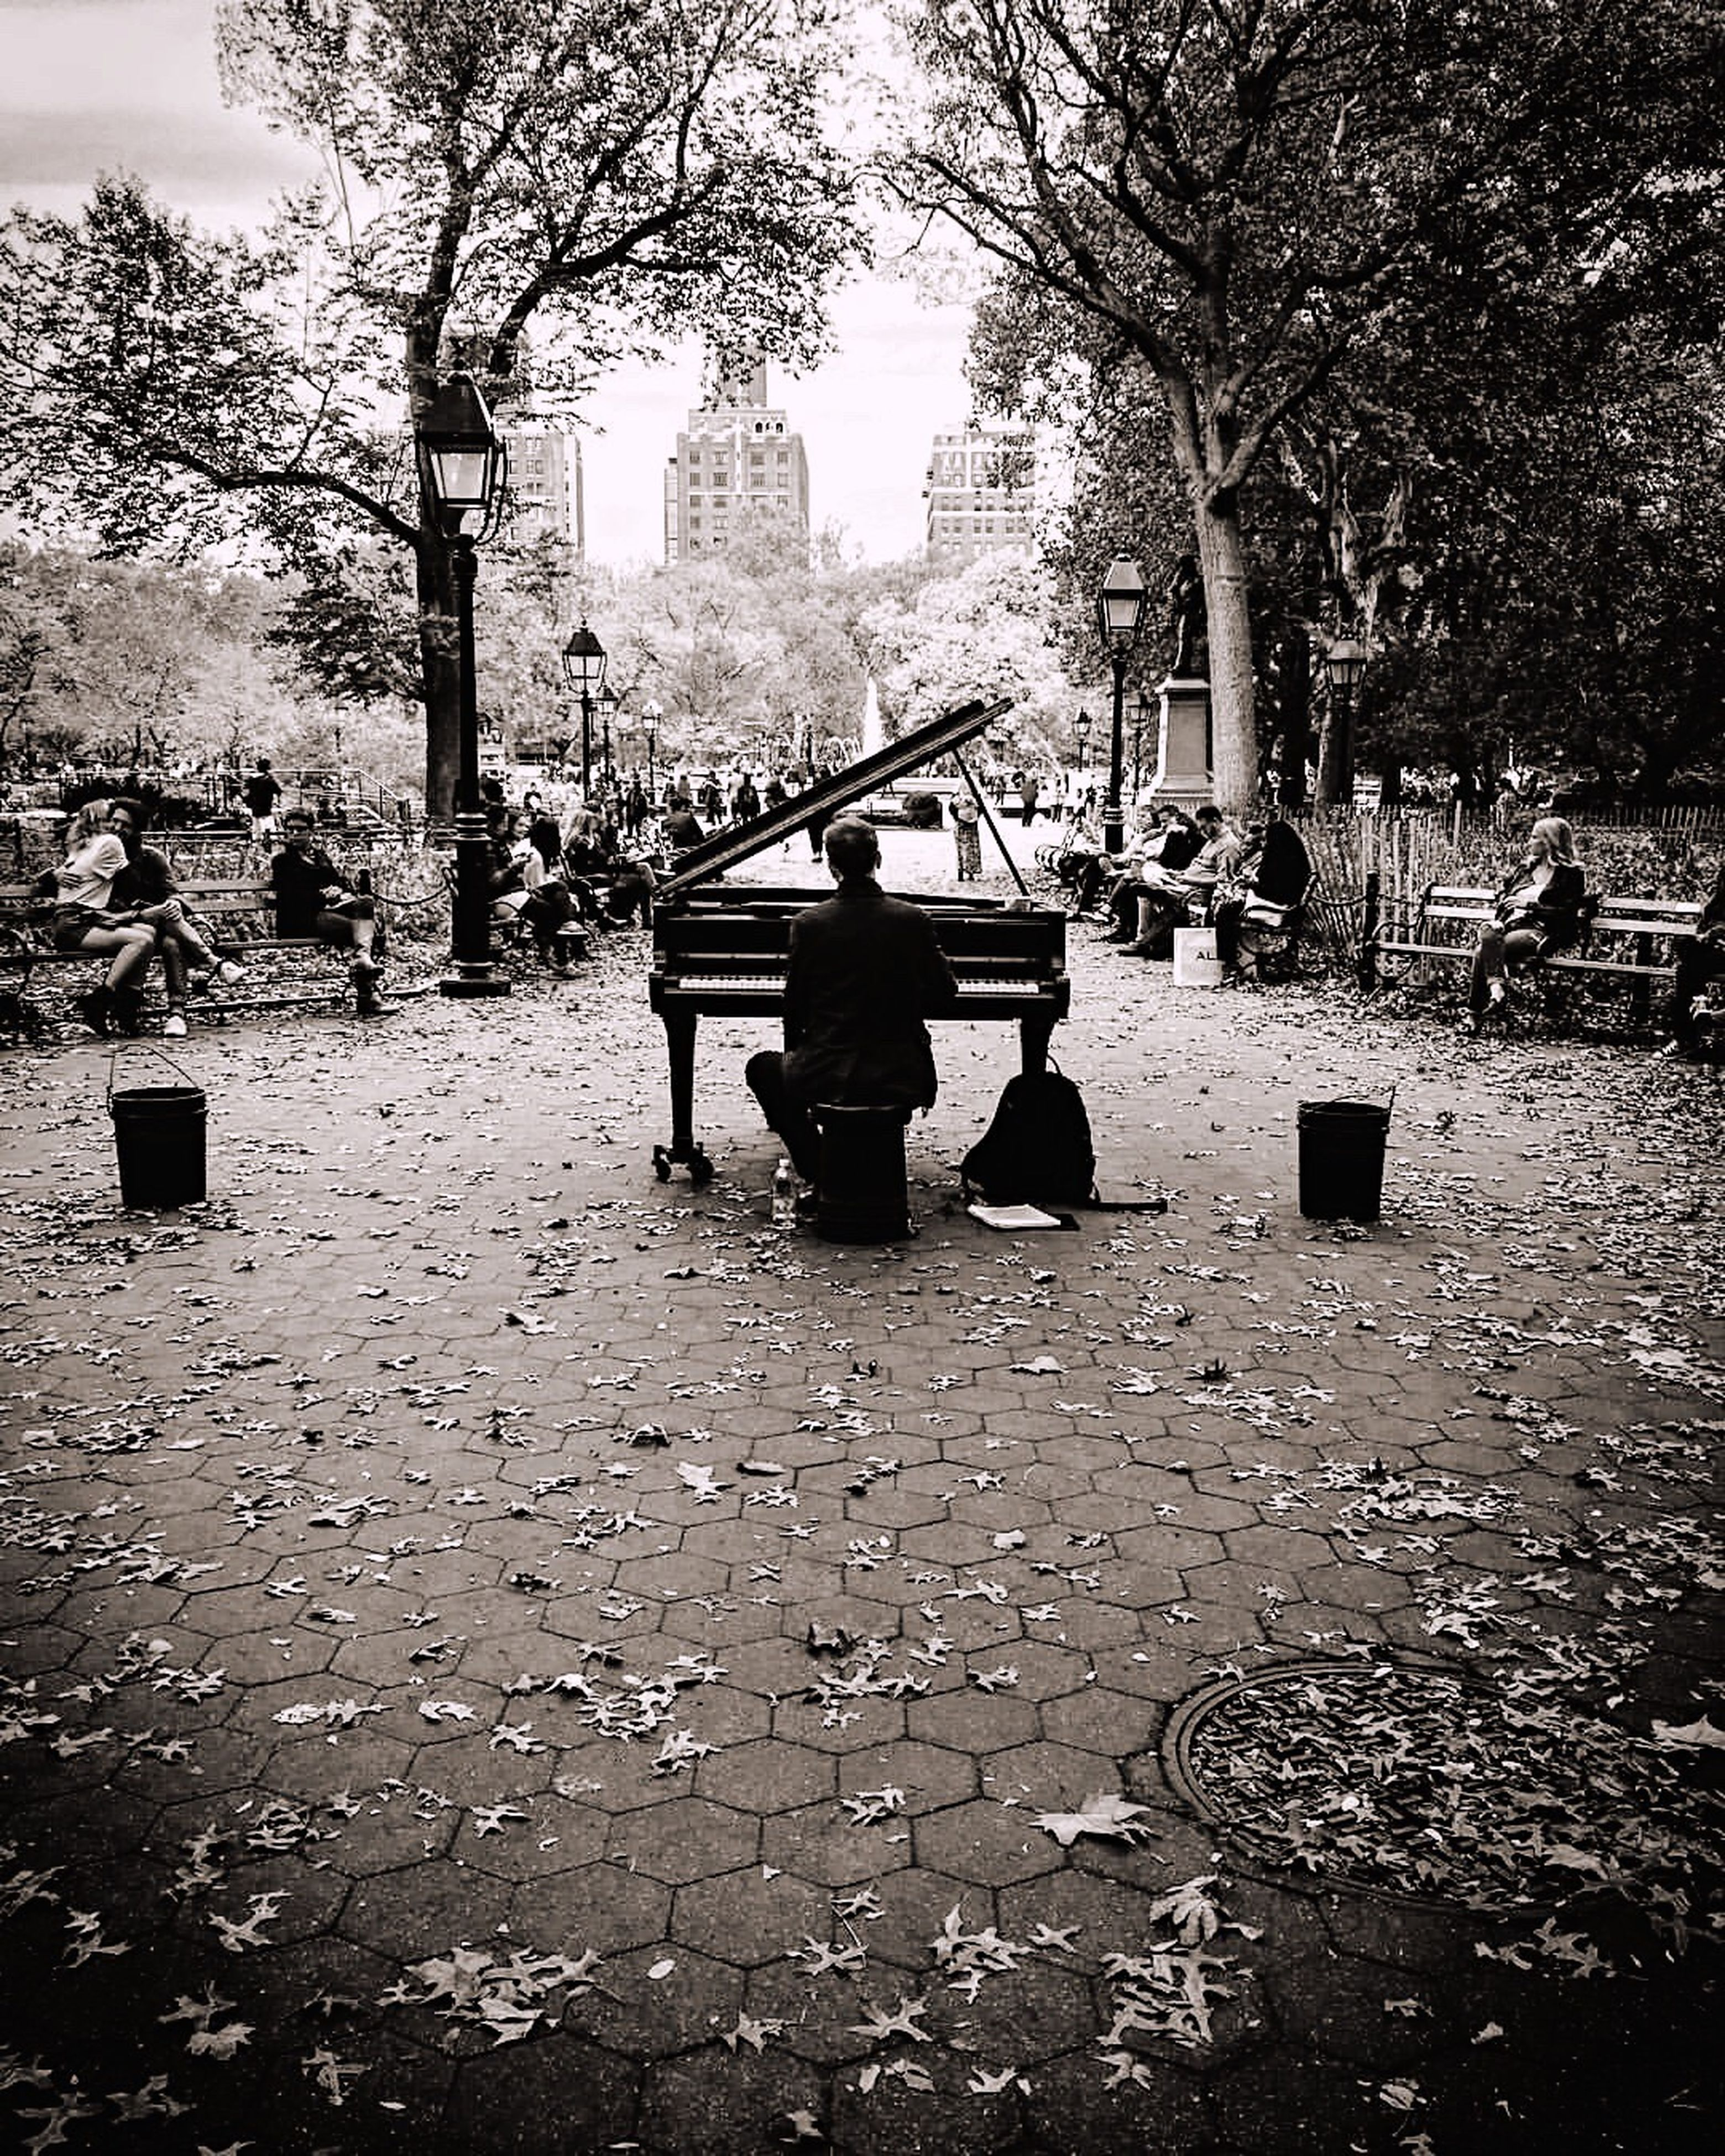 tree, lifestyles, leisure activity, sitting, day, relaxation, city, outdoors, city life, nature, park, casual clothing, empty